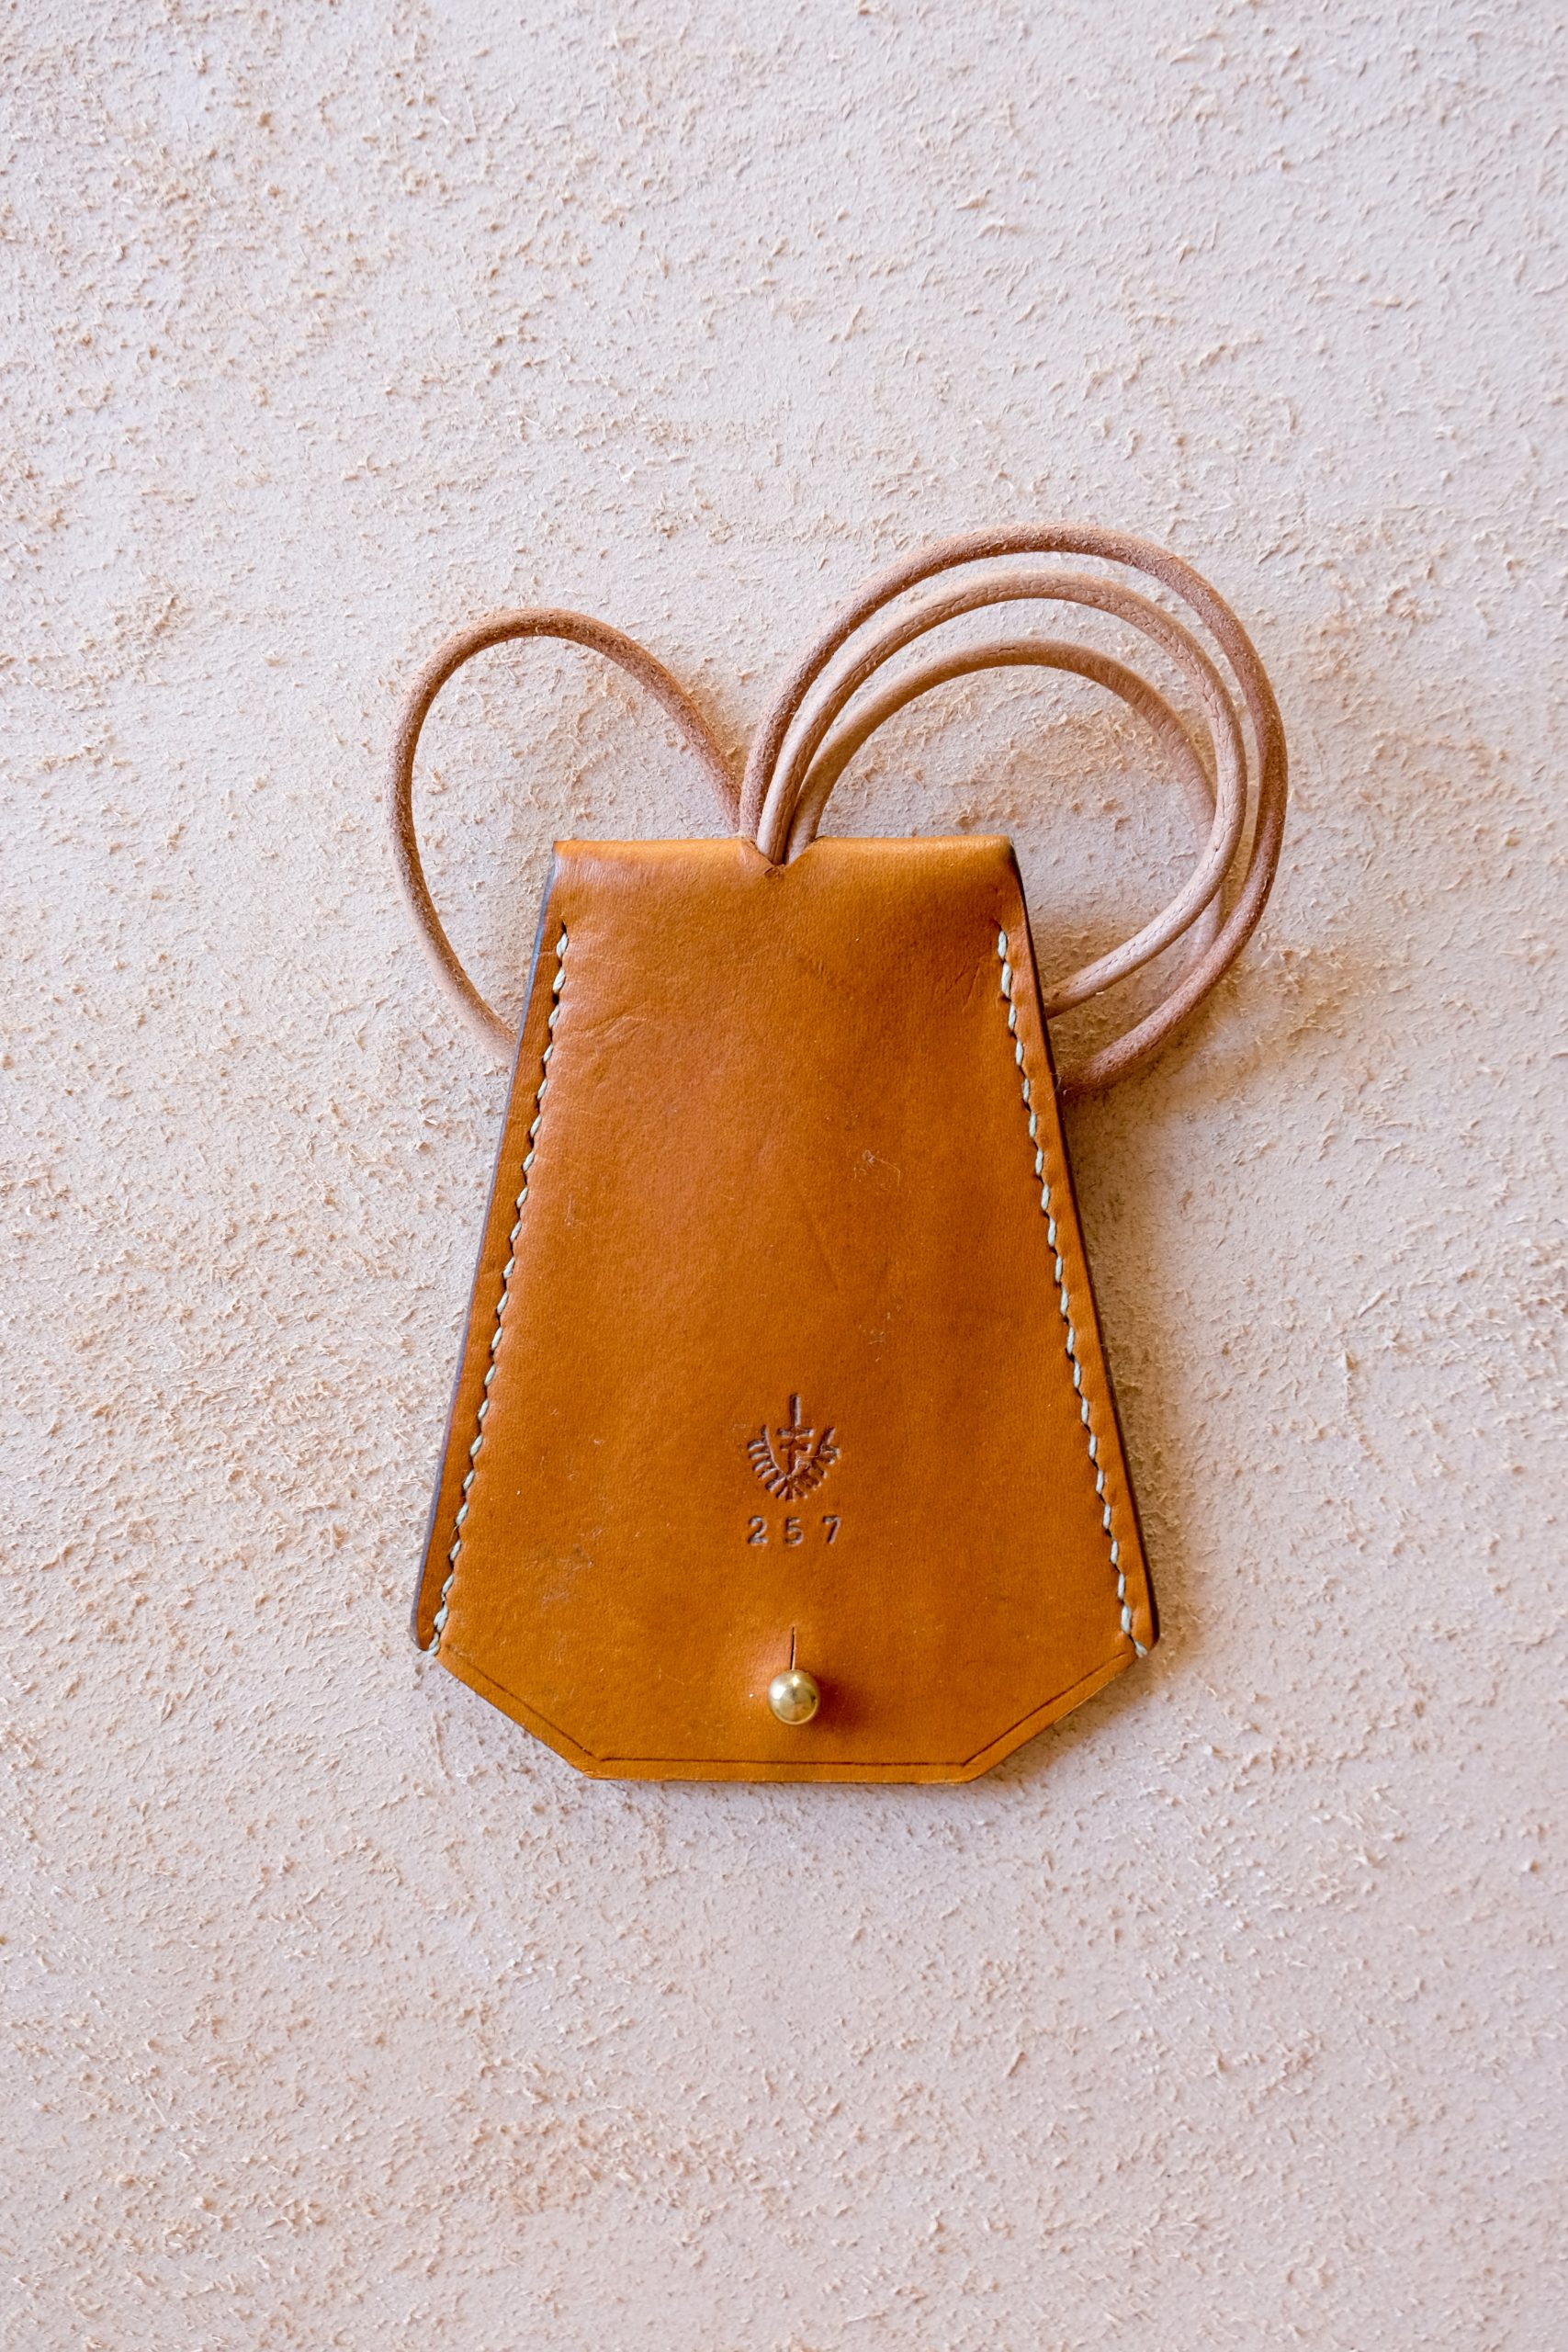 lerif designs leather bell keyholder in turmeric on beige background